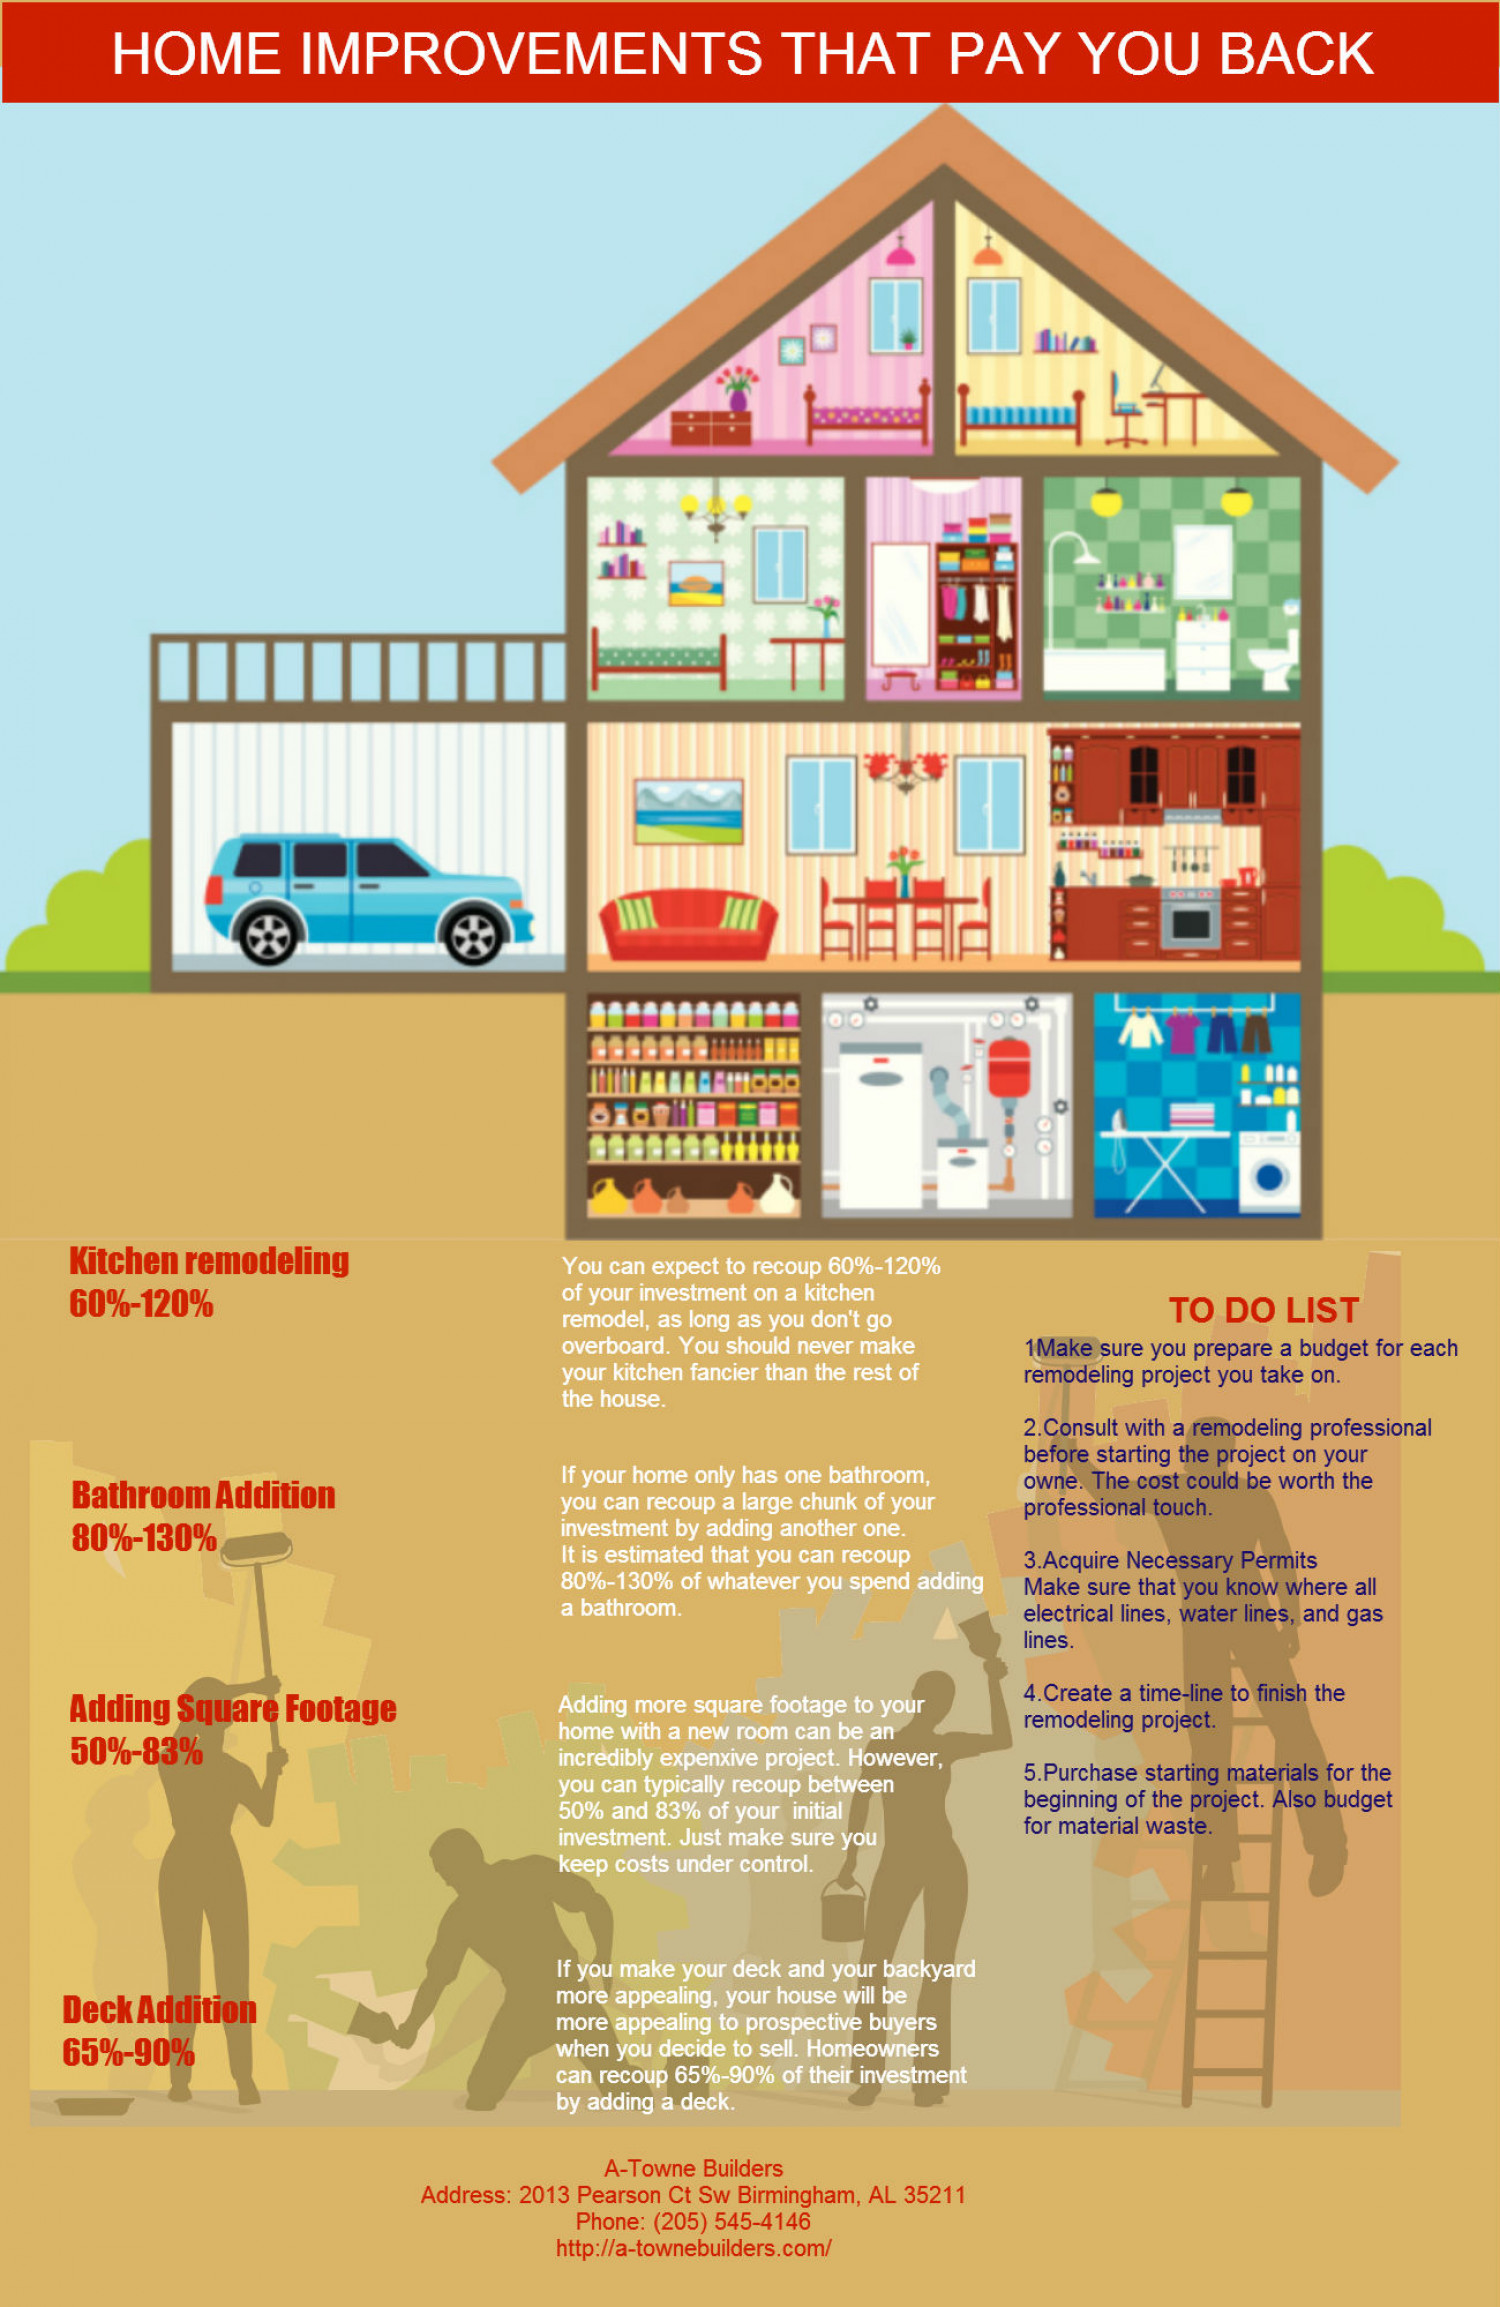 Home Improvements That Pay You Back Infographic